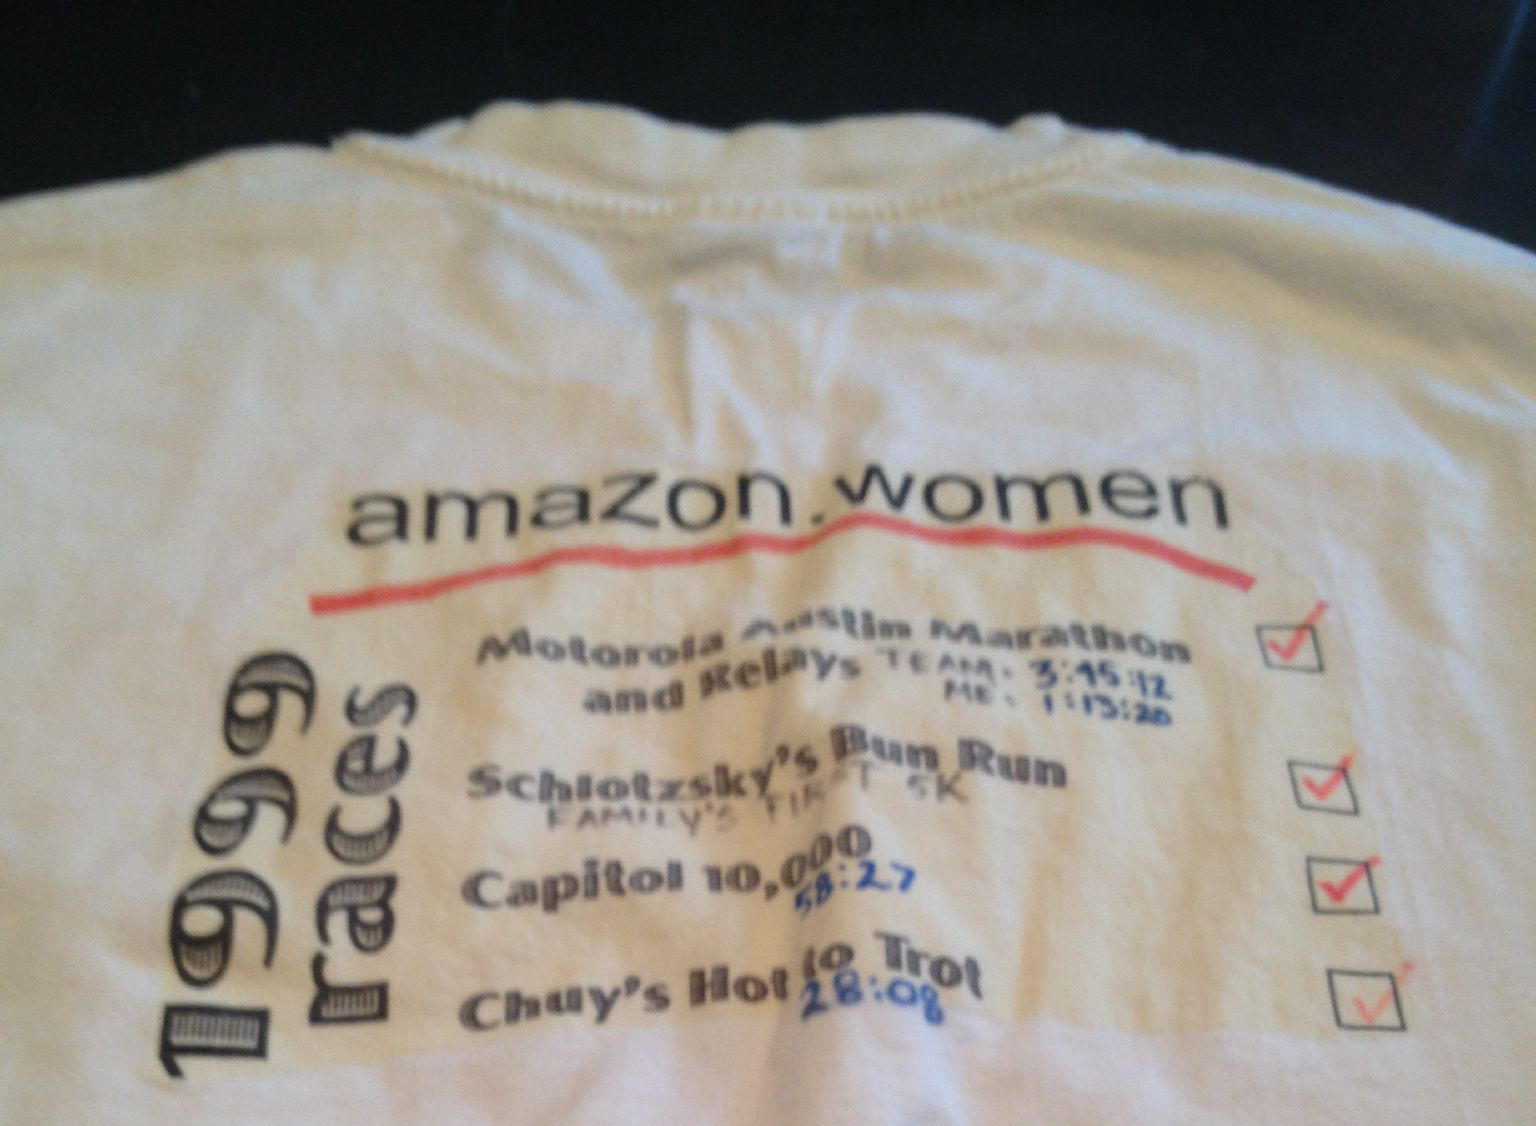 Photo of hand made t-shirt from 199 with four races and team name Amazon.women